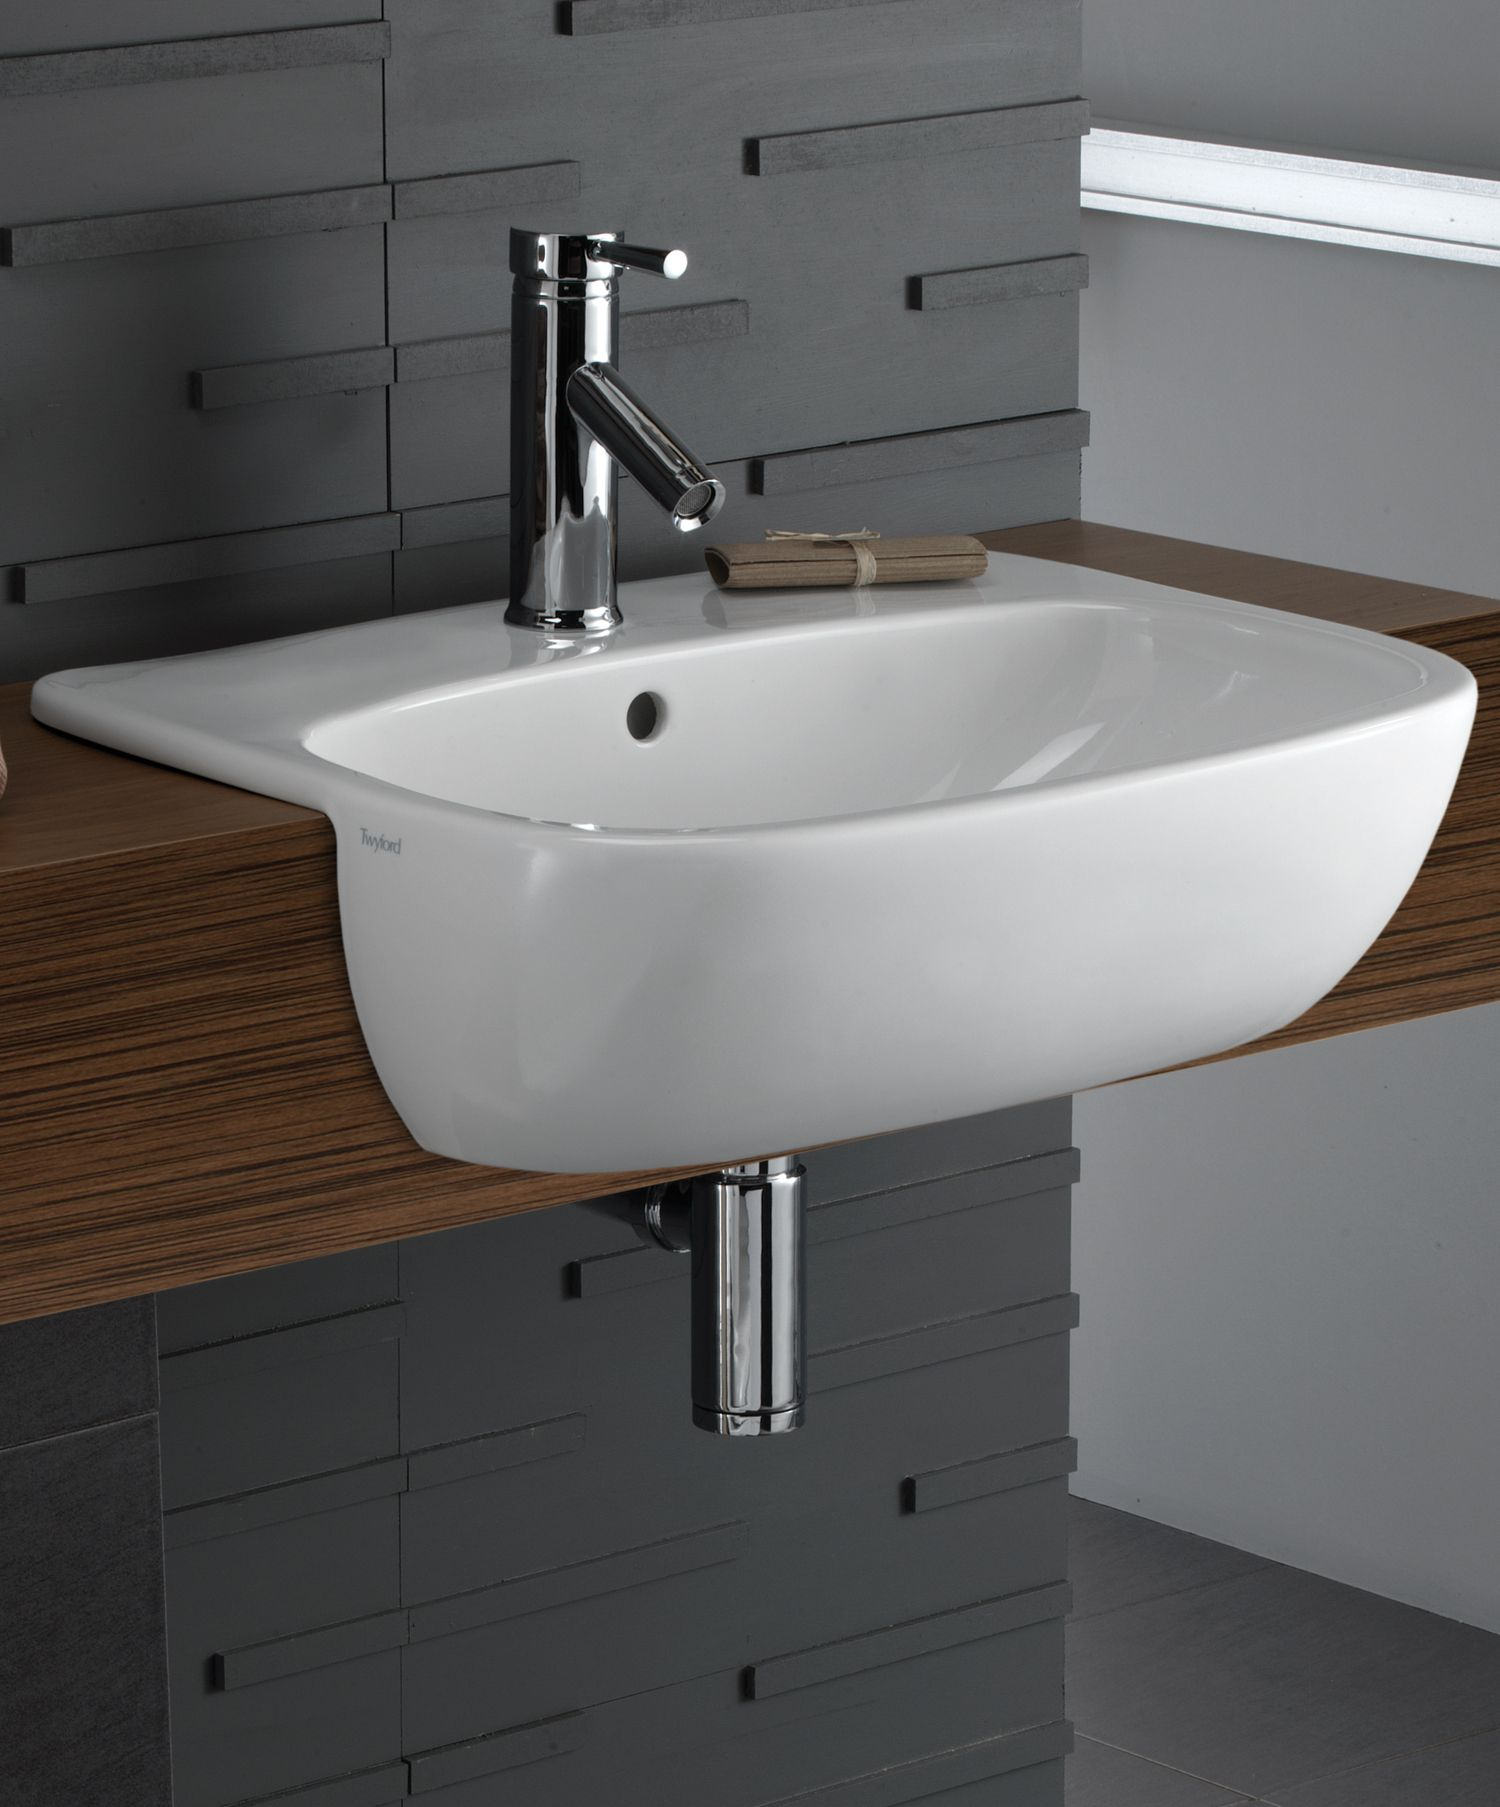 Twyford Moda 550mm Semi Recessed Basin Showers Toilets and